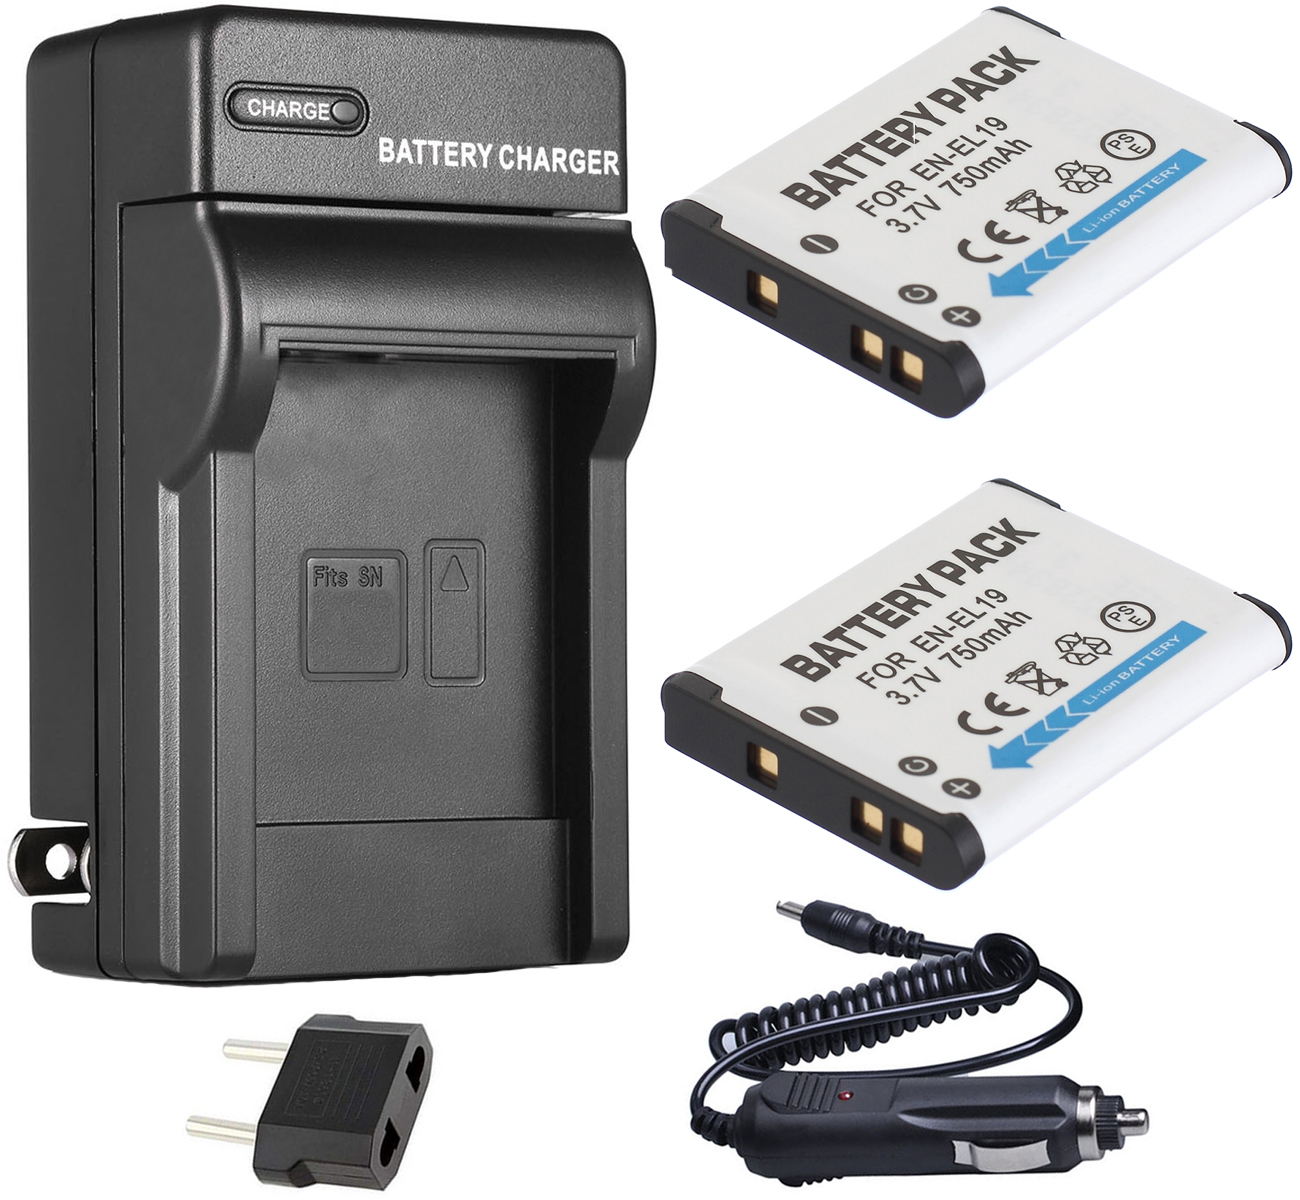 EN-EL19 Battery 2-Pack + Charger For Nikon Coolpix S3100, S3200, S3300, S3400, S3500, S3600, S3700, S6800, S6900 Digital Camera image